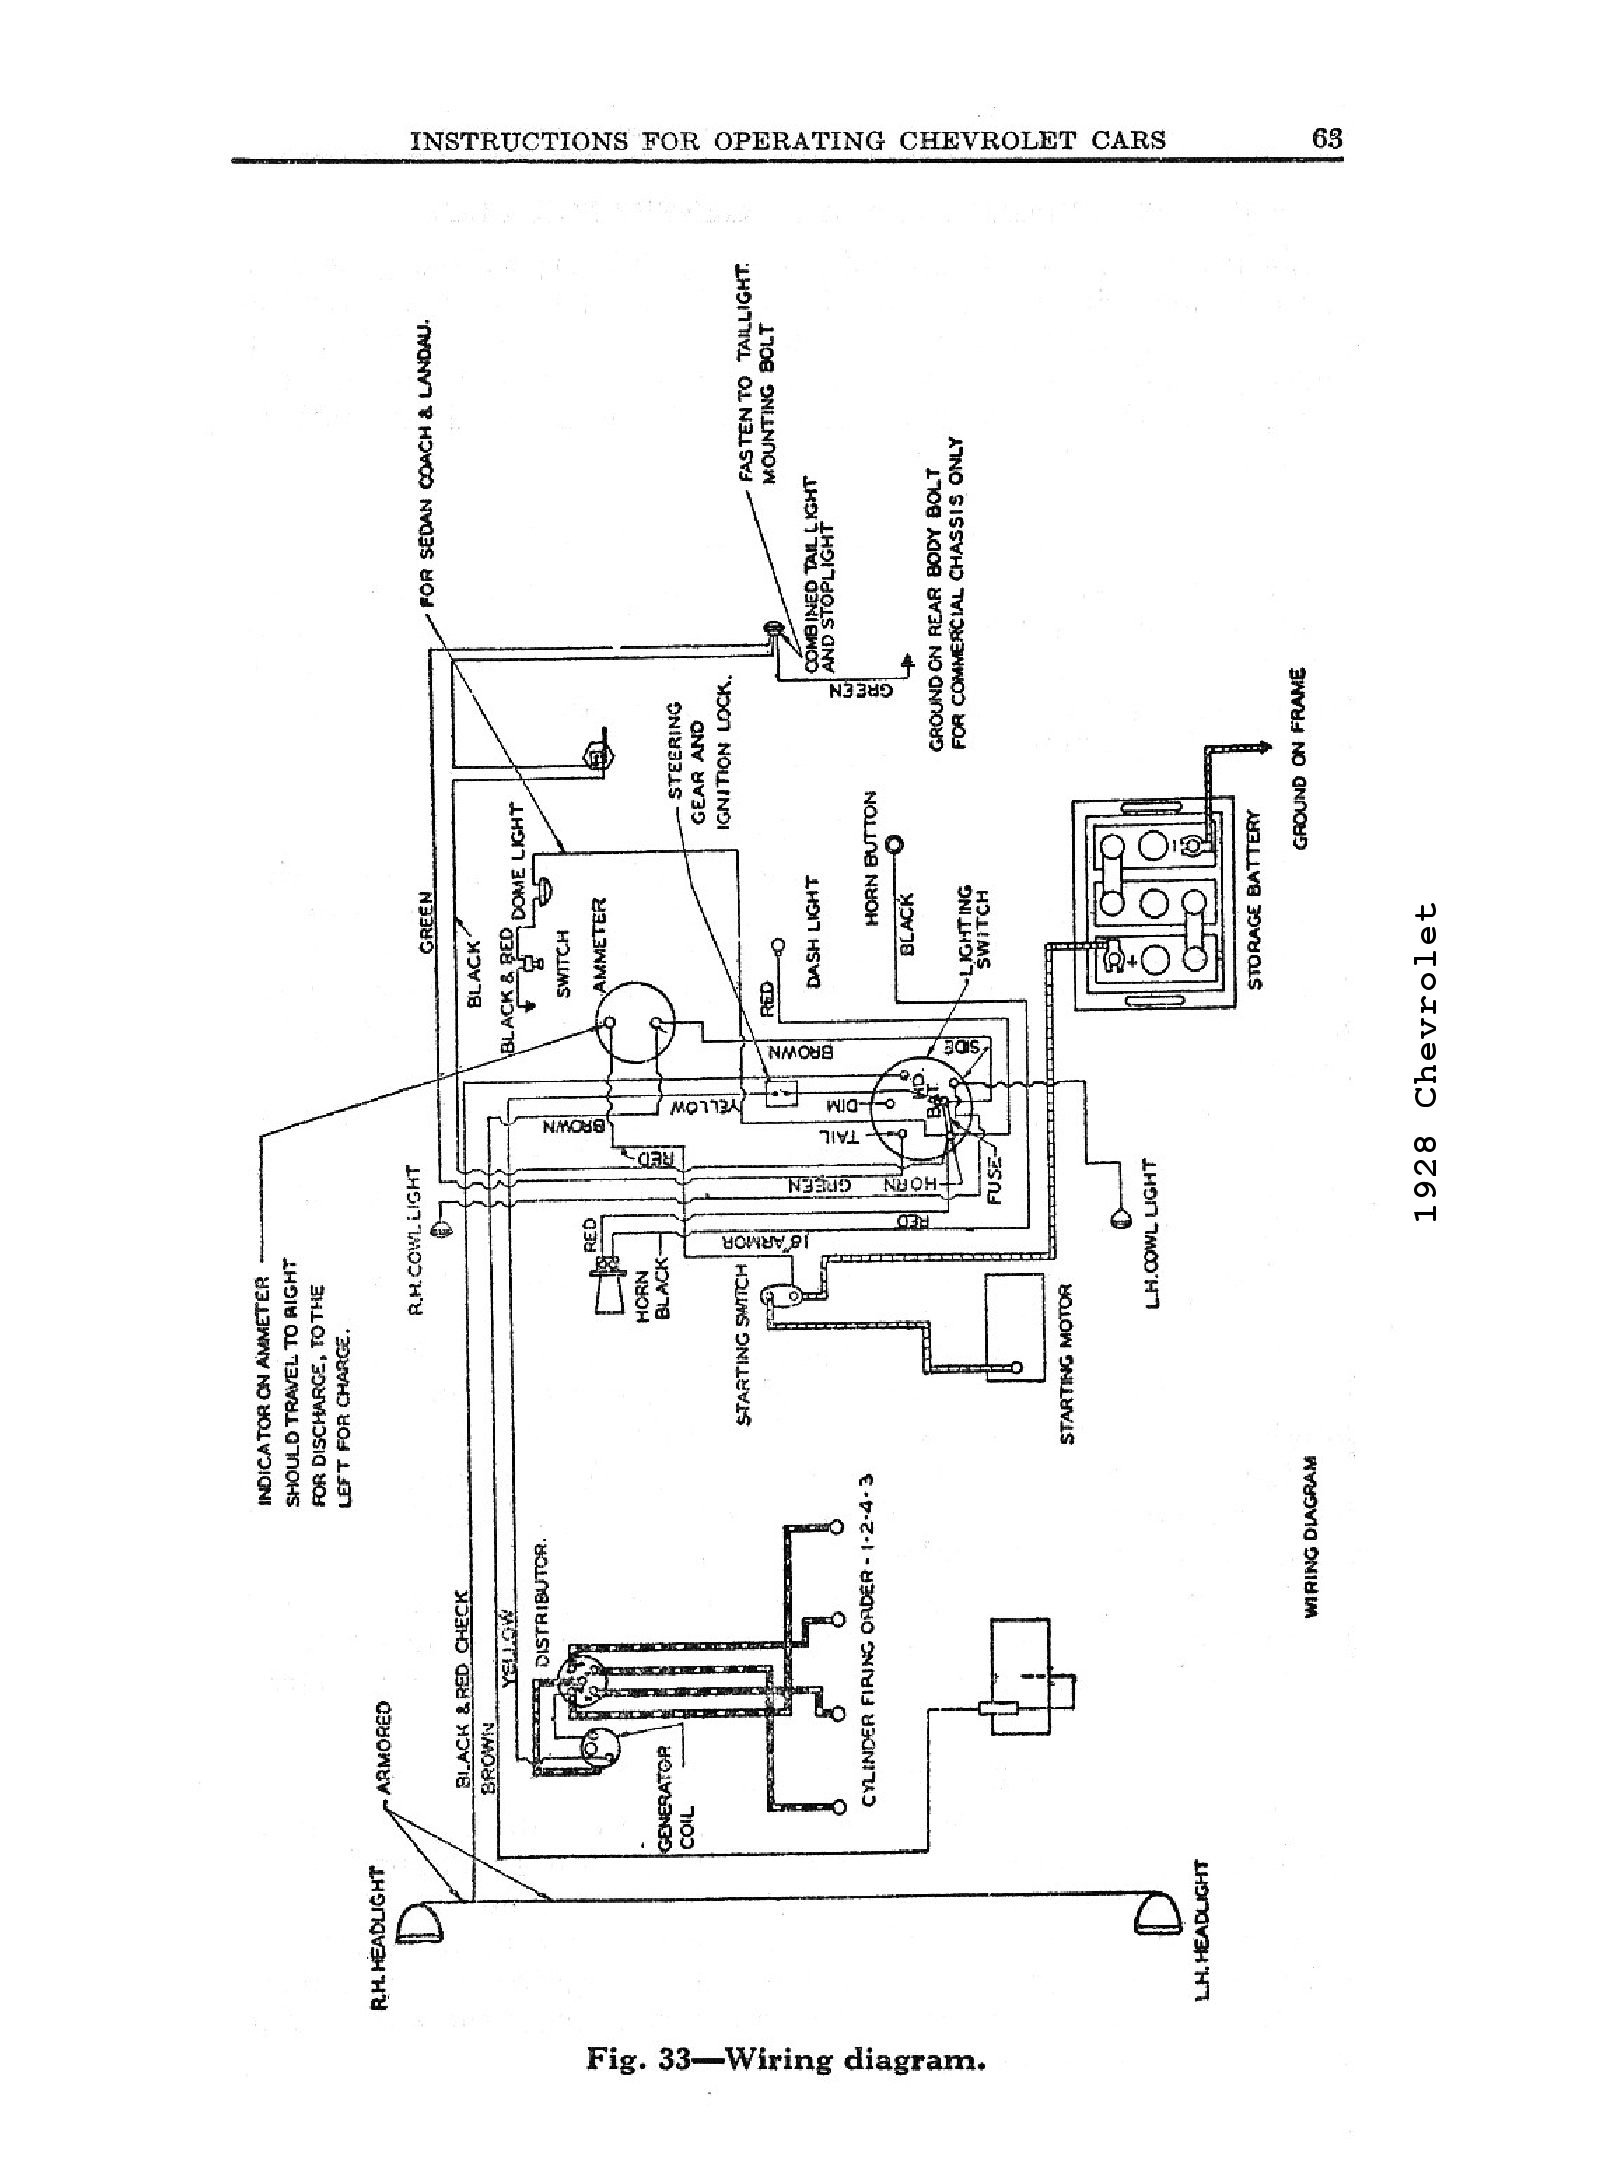 1964 Dodge D100 Wiring Diagram Layout Diagrams 1960 Schematic Rh Theodocle Fion Com 1970